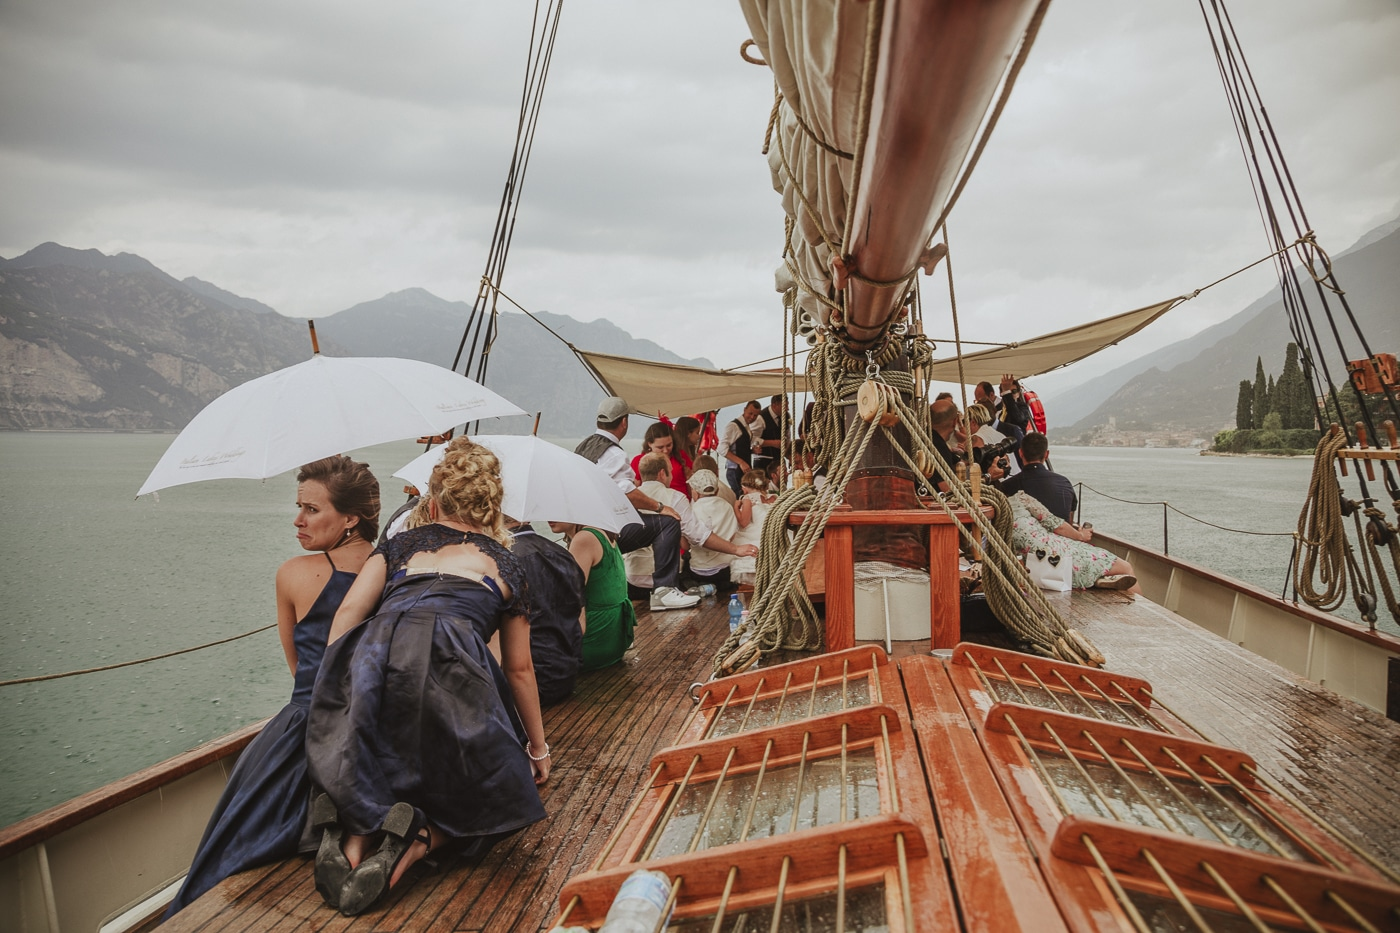 Wedding guests in dresses and suits sheltering under white umbrellas on a yacht in the rain with the mountains and lake garda in the background by Joshua Wyborn